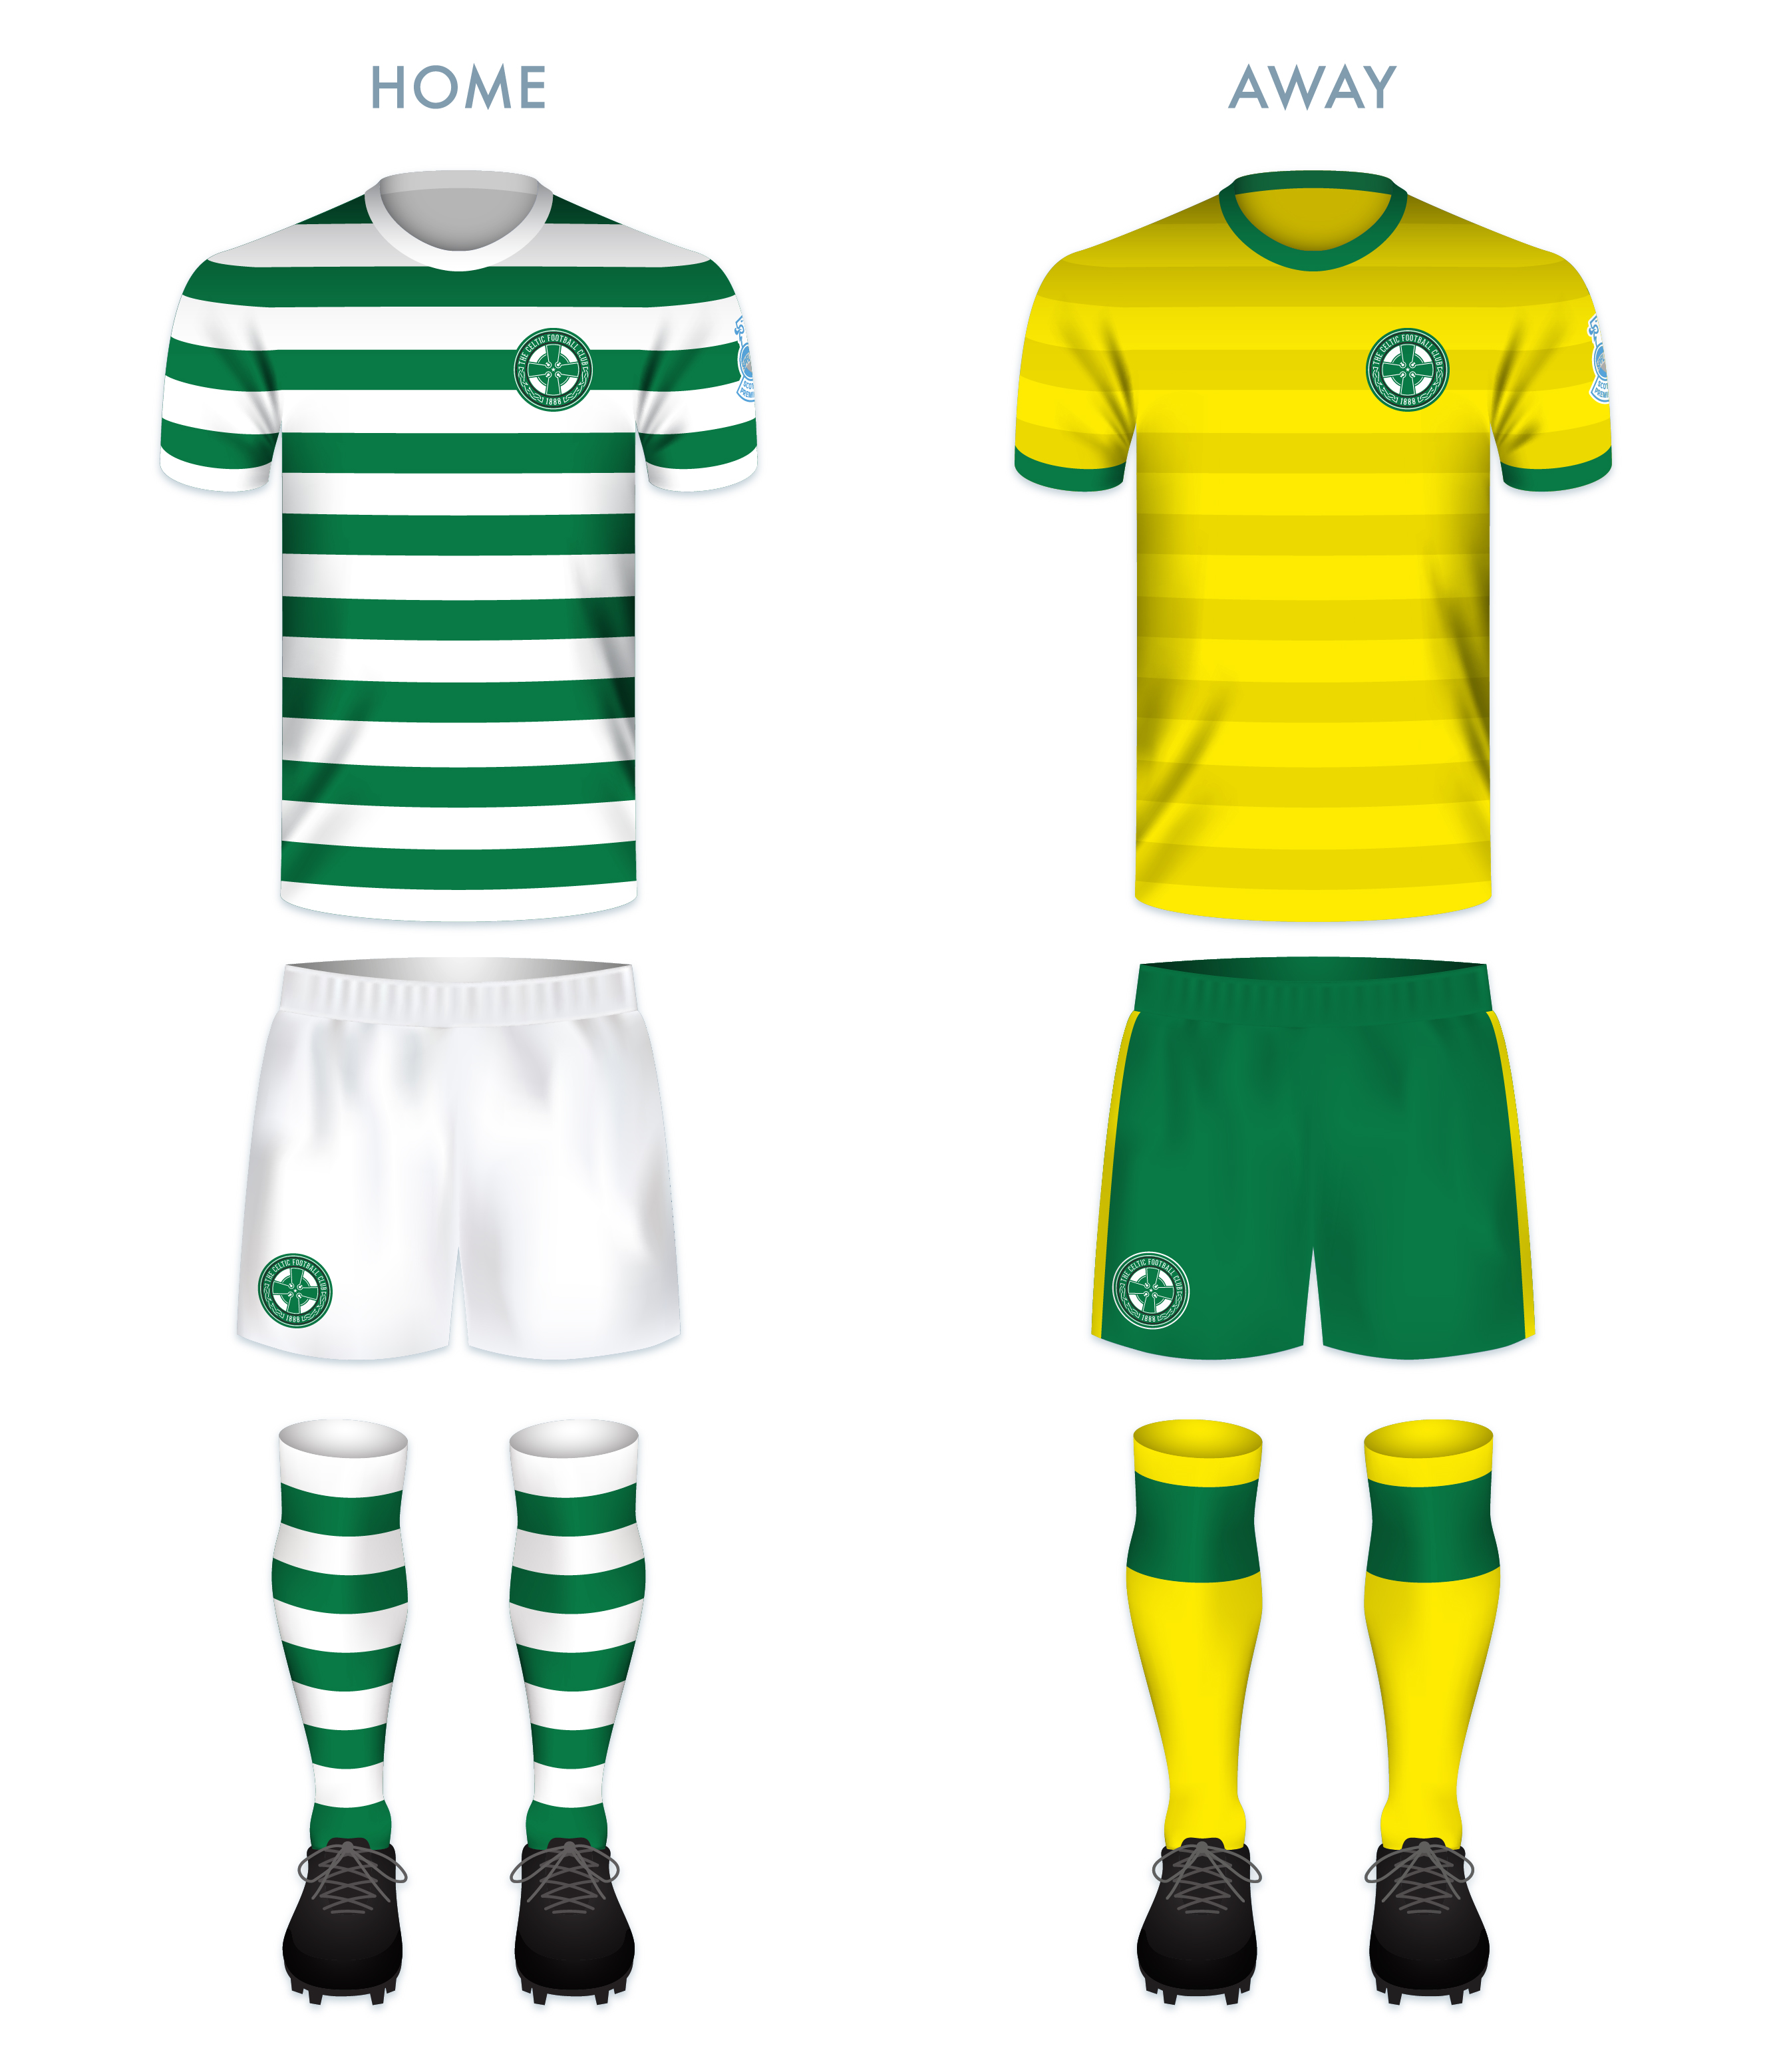 differently d7ca5 9eafd ReBrand: Celtic FC – ELIJAH WADE ARTEFACTS